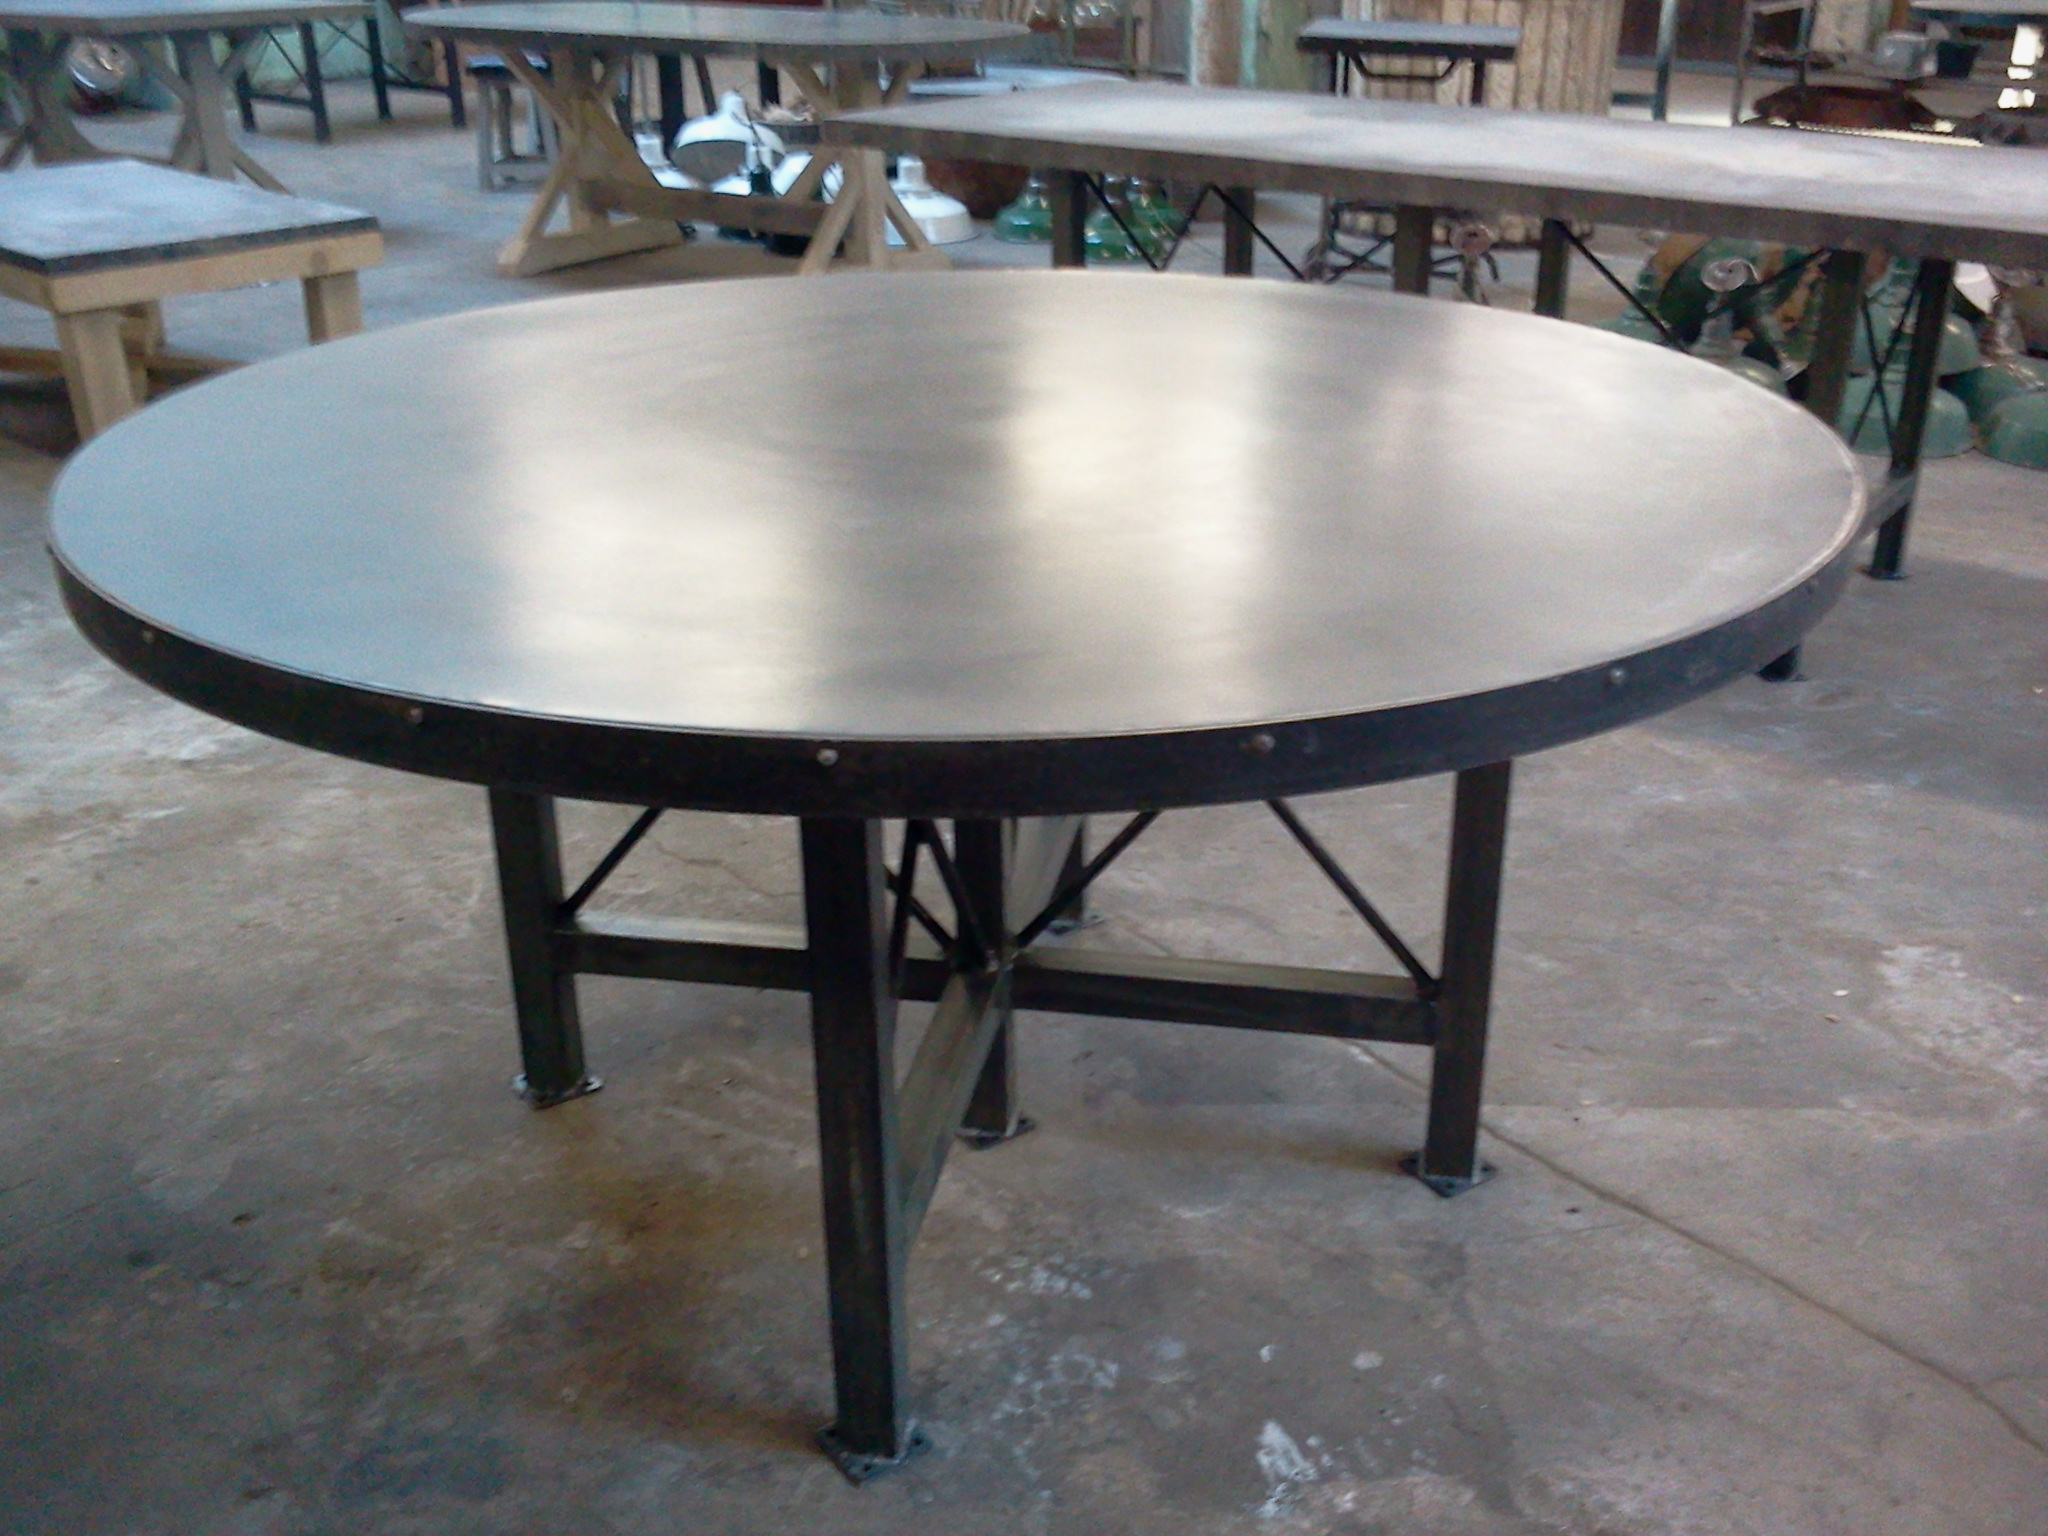 ... 2011 11 18 16.22.49. Big Round Zinc Table